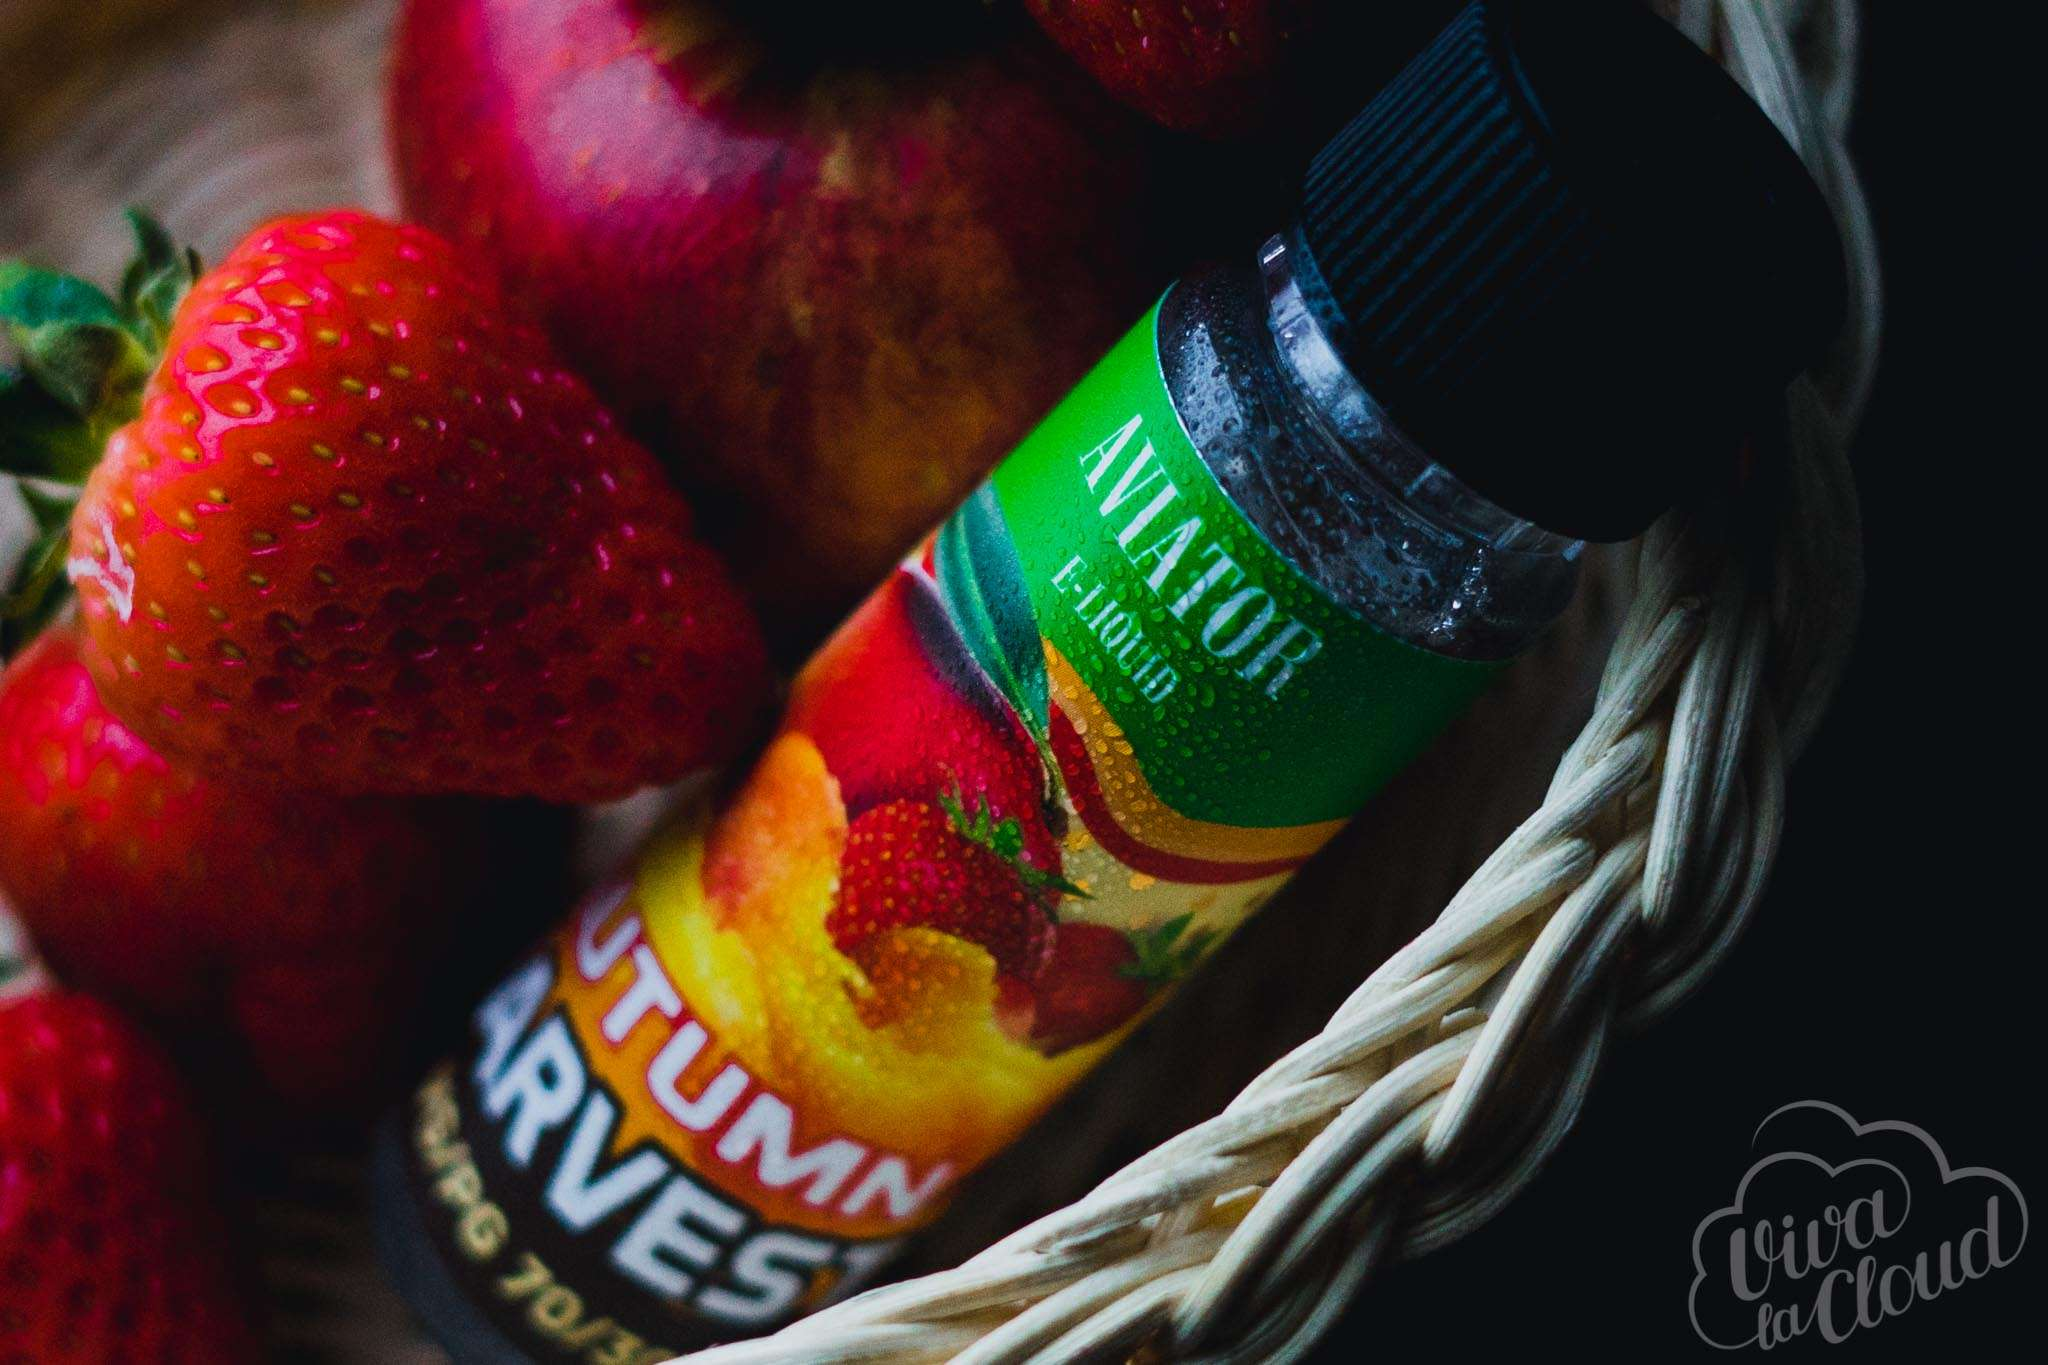 AVIATOR E-LIQUID